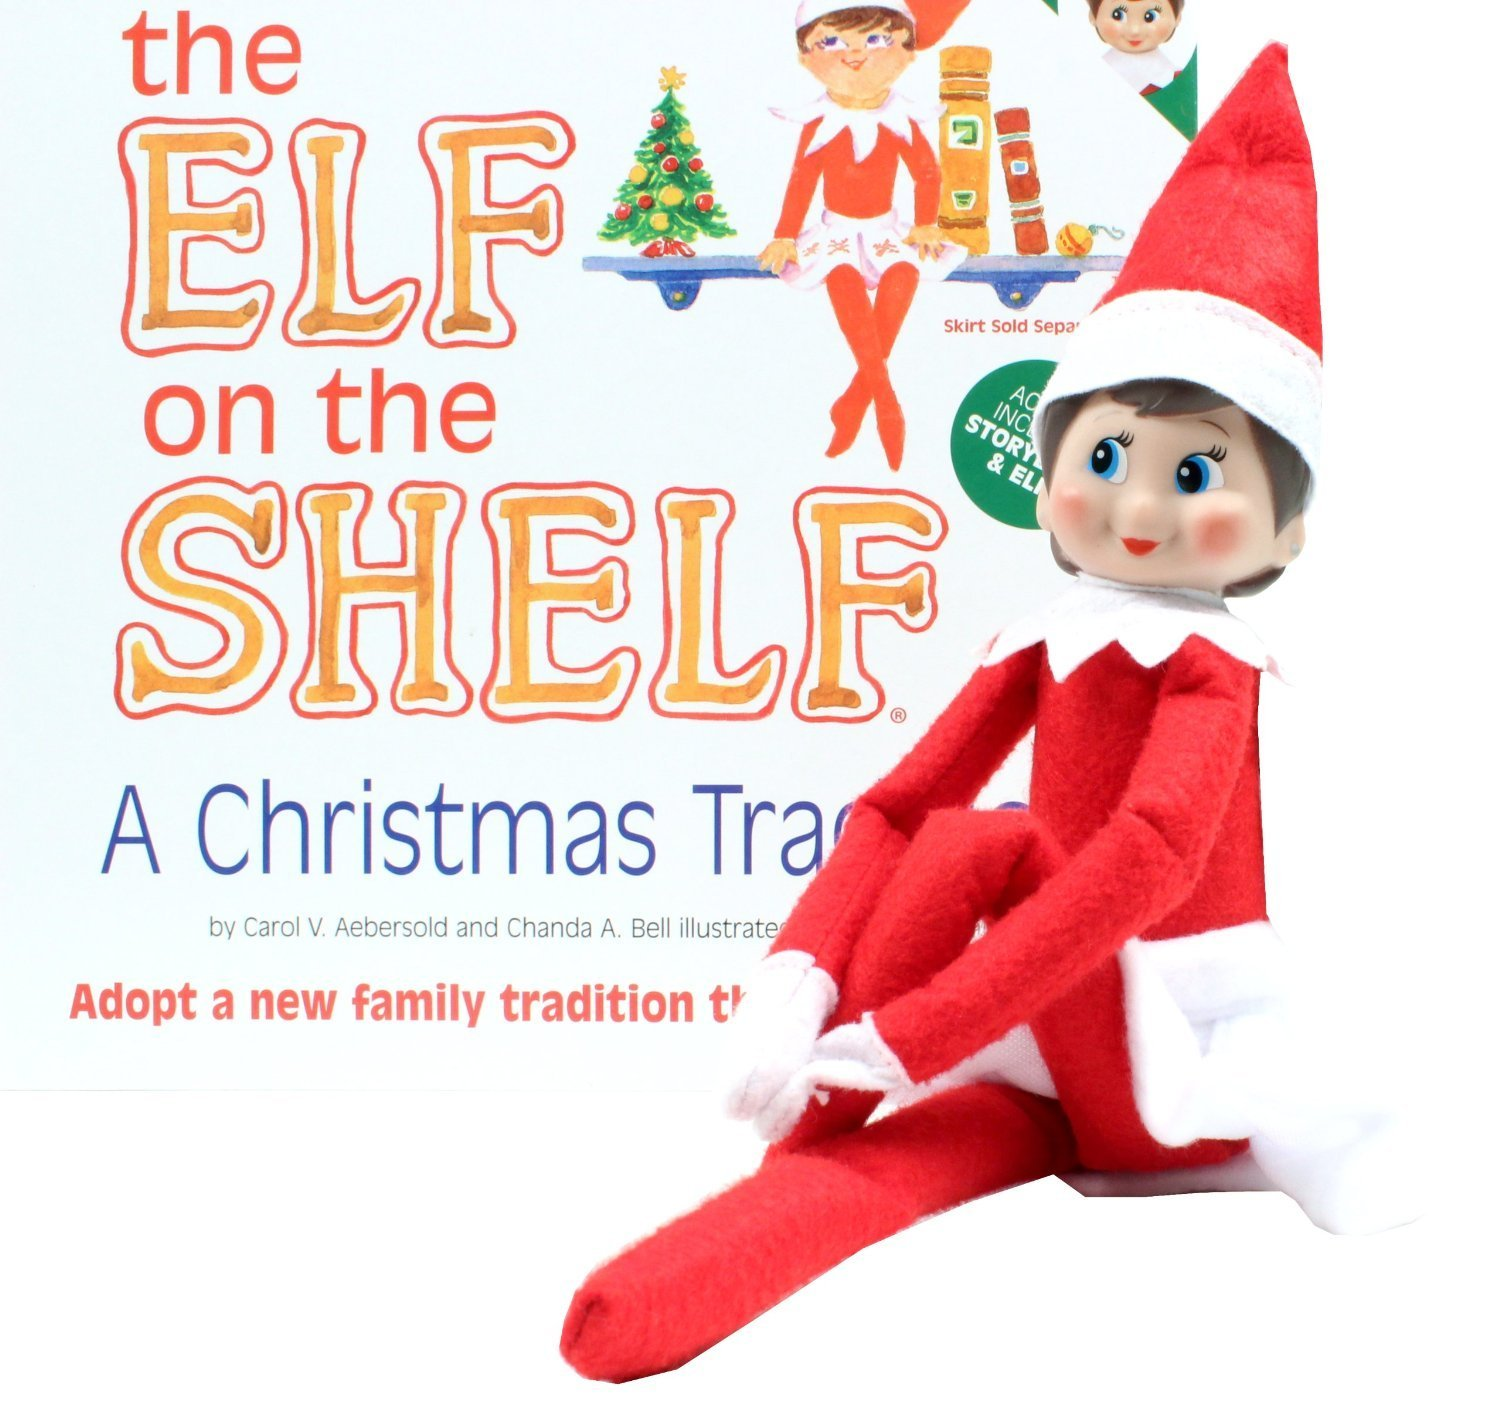 Amazon.com: The Elf on the Shelf Girl Elf Edition with North Pole ...